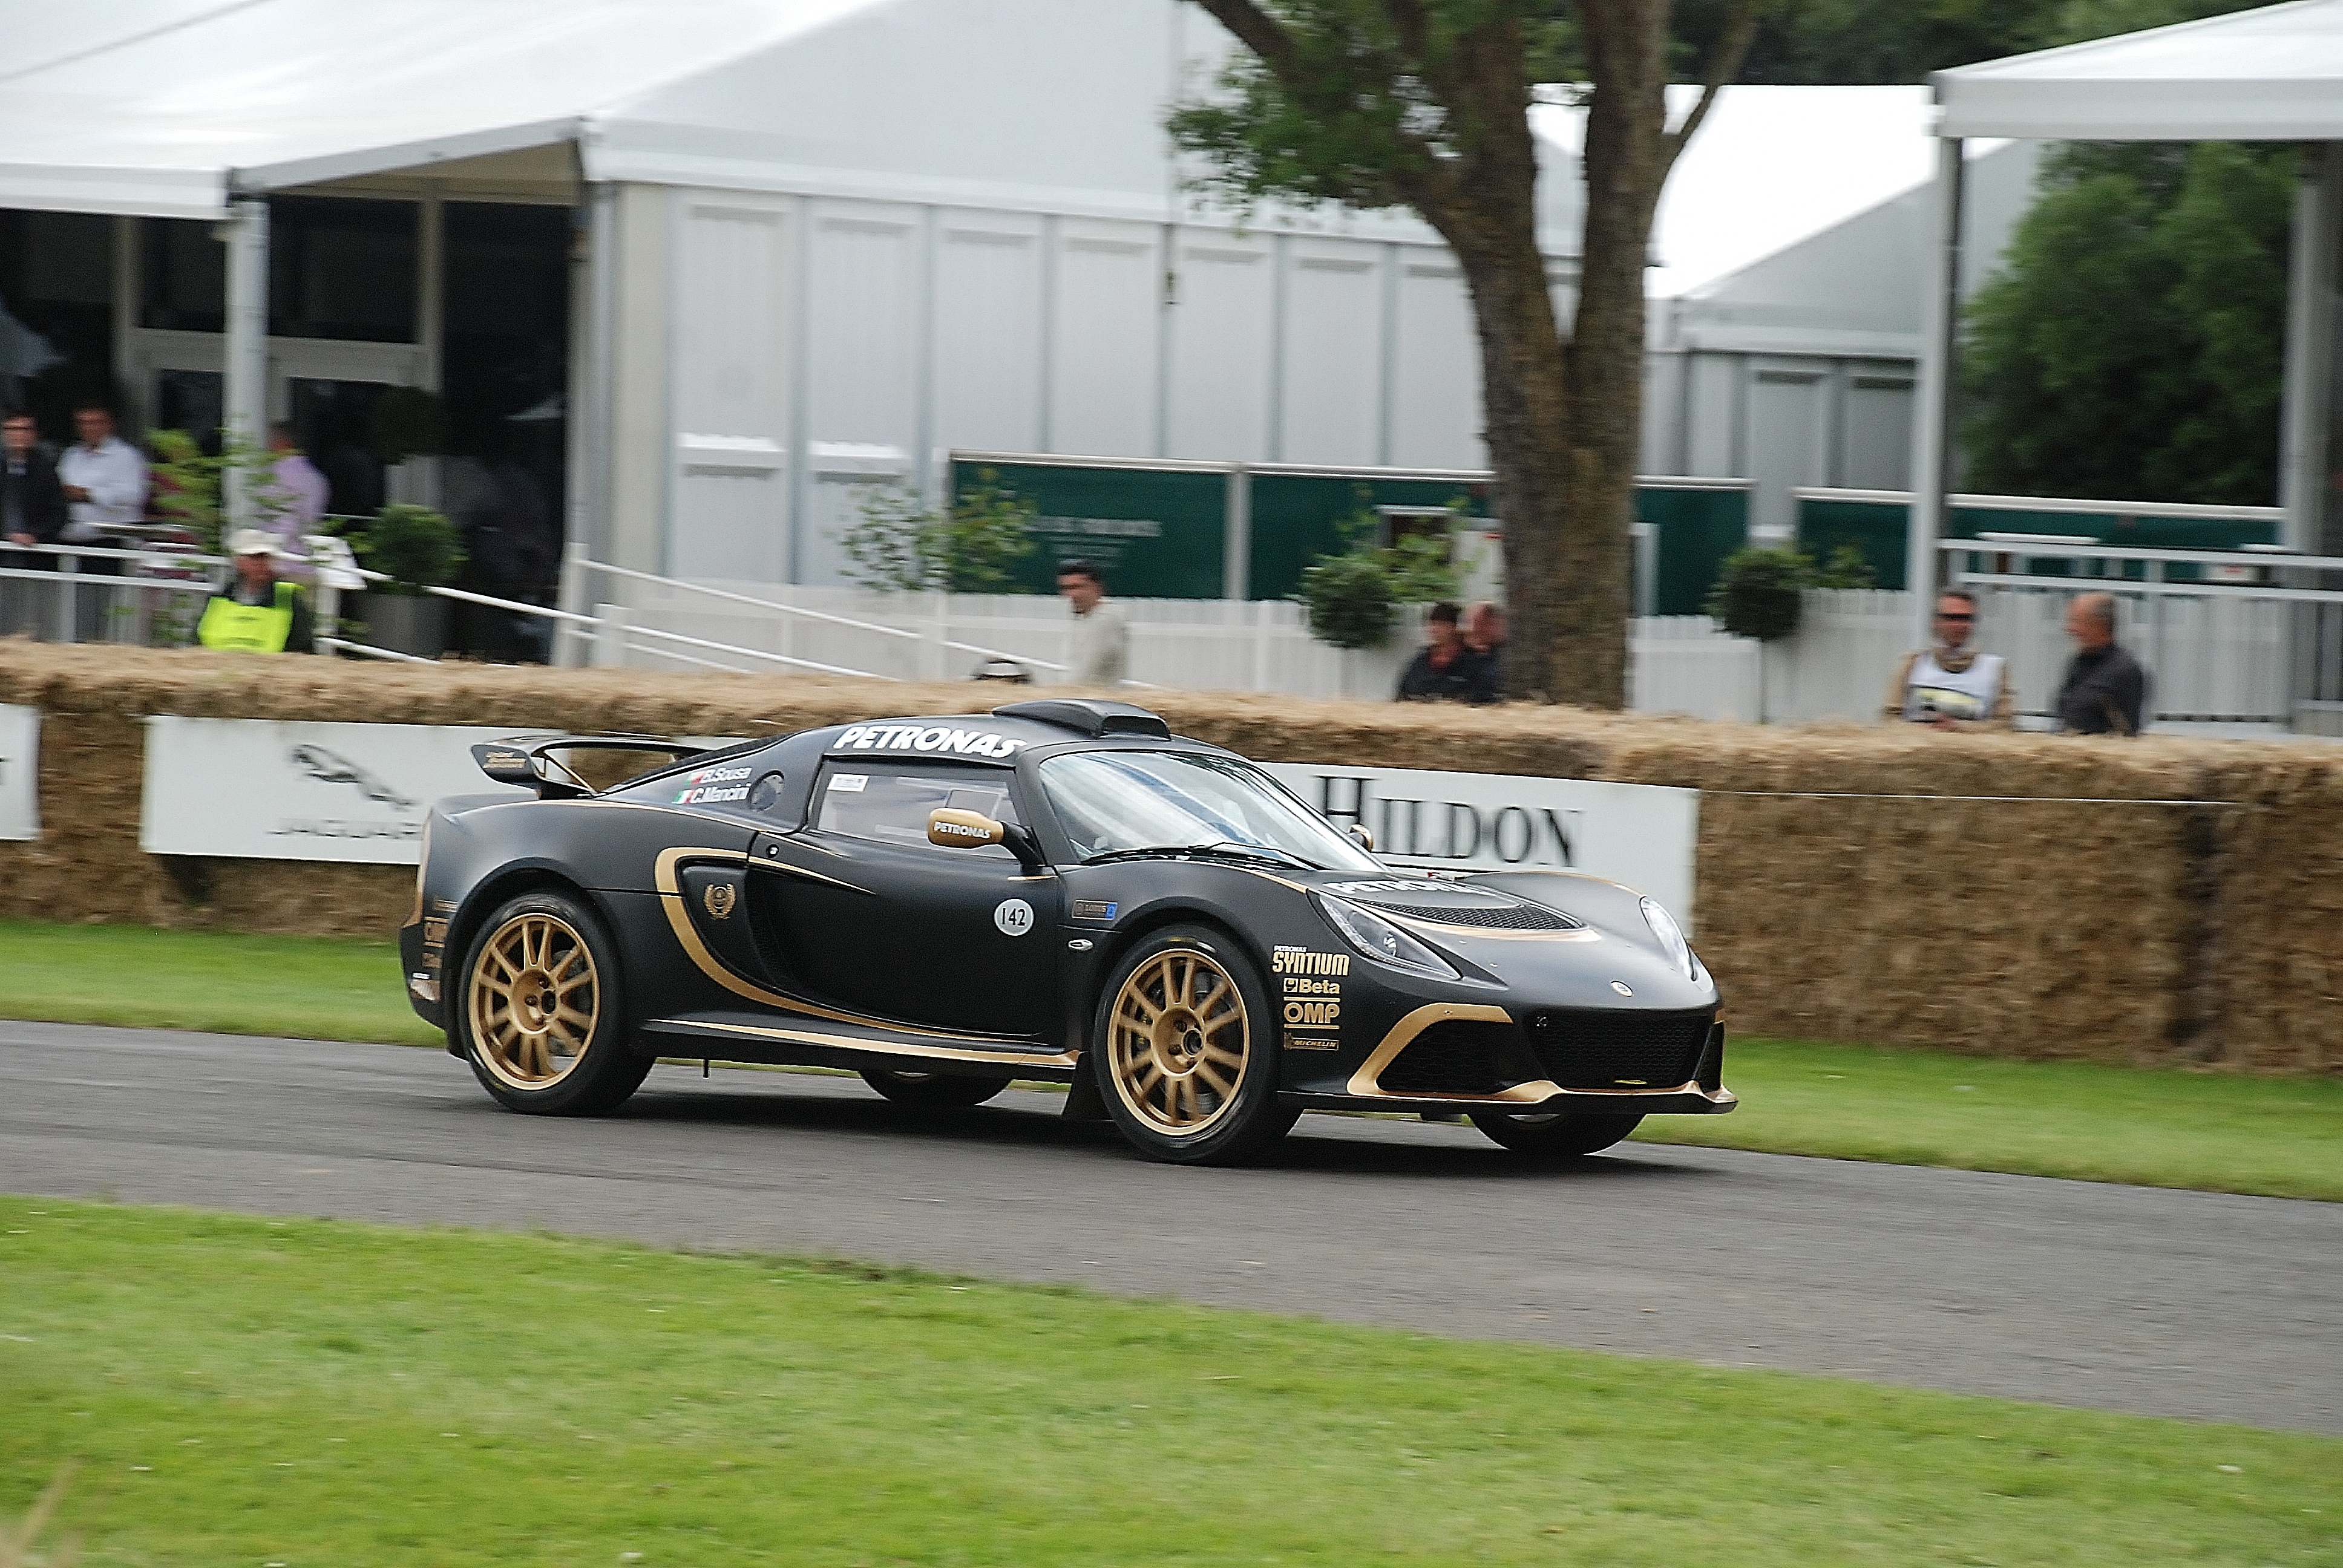 Lotus Exige R/GT 2012 3.5-litre V6 | Flickr - Photo Sharing!